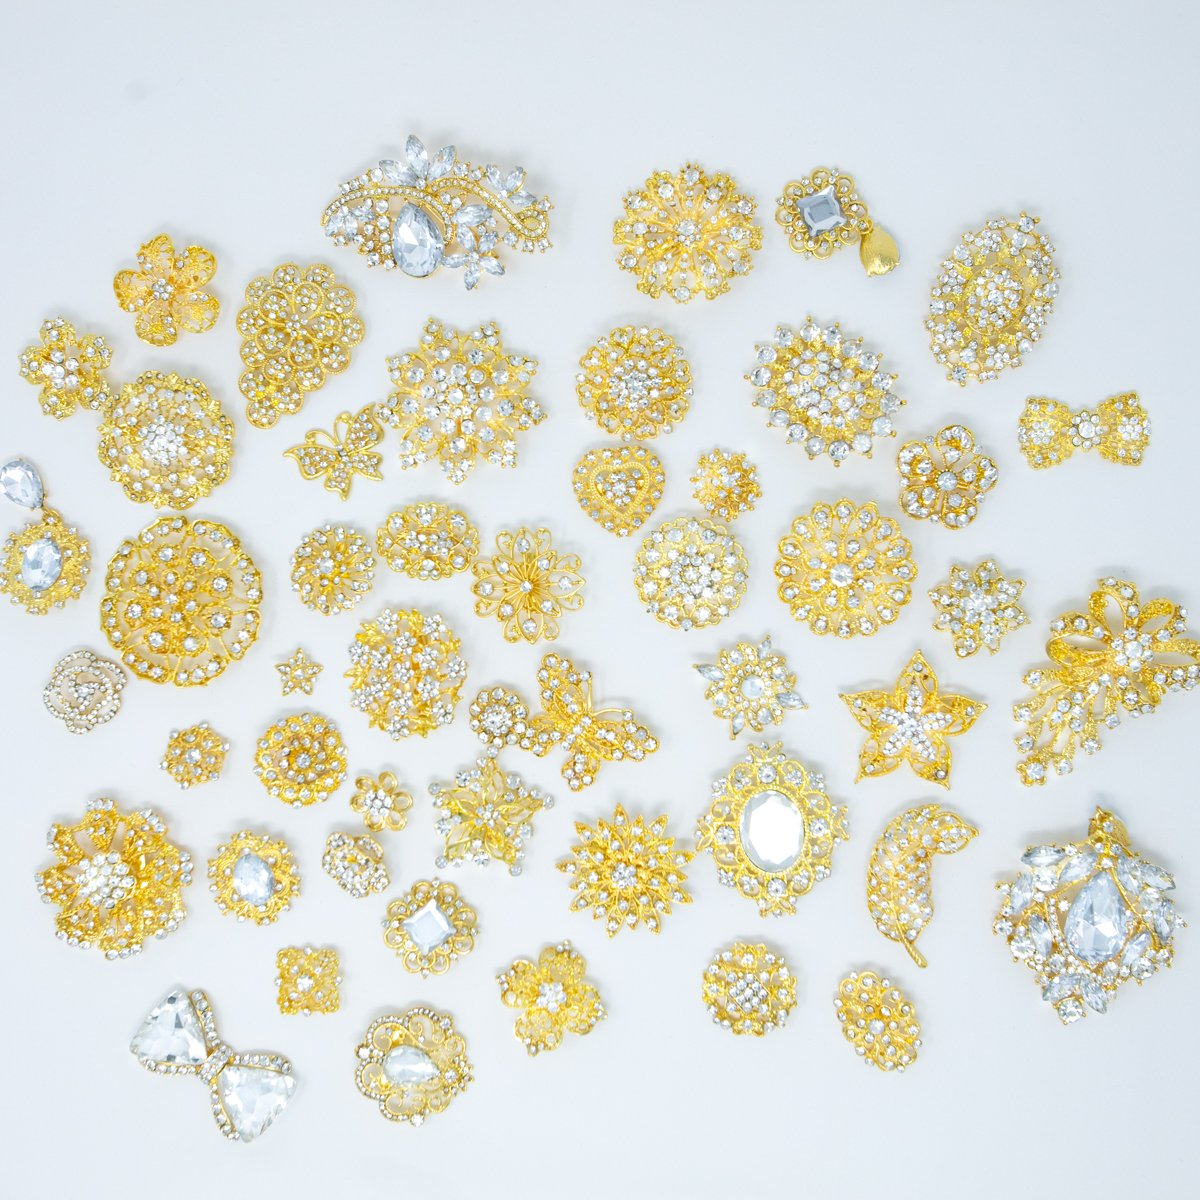 Bulk Rhinestone Embellishments for Crafts